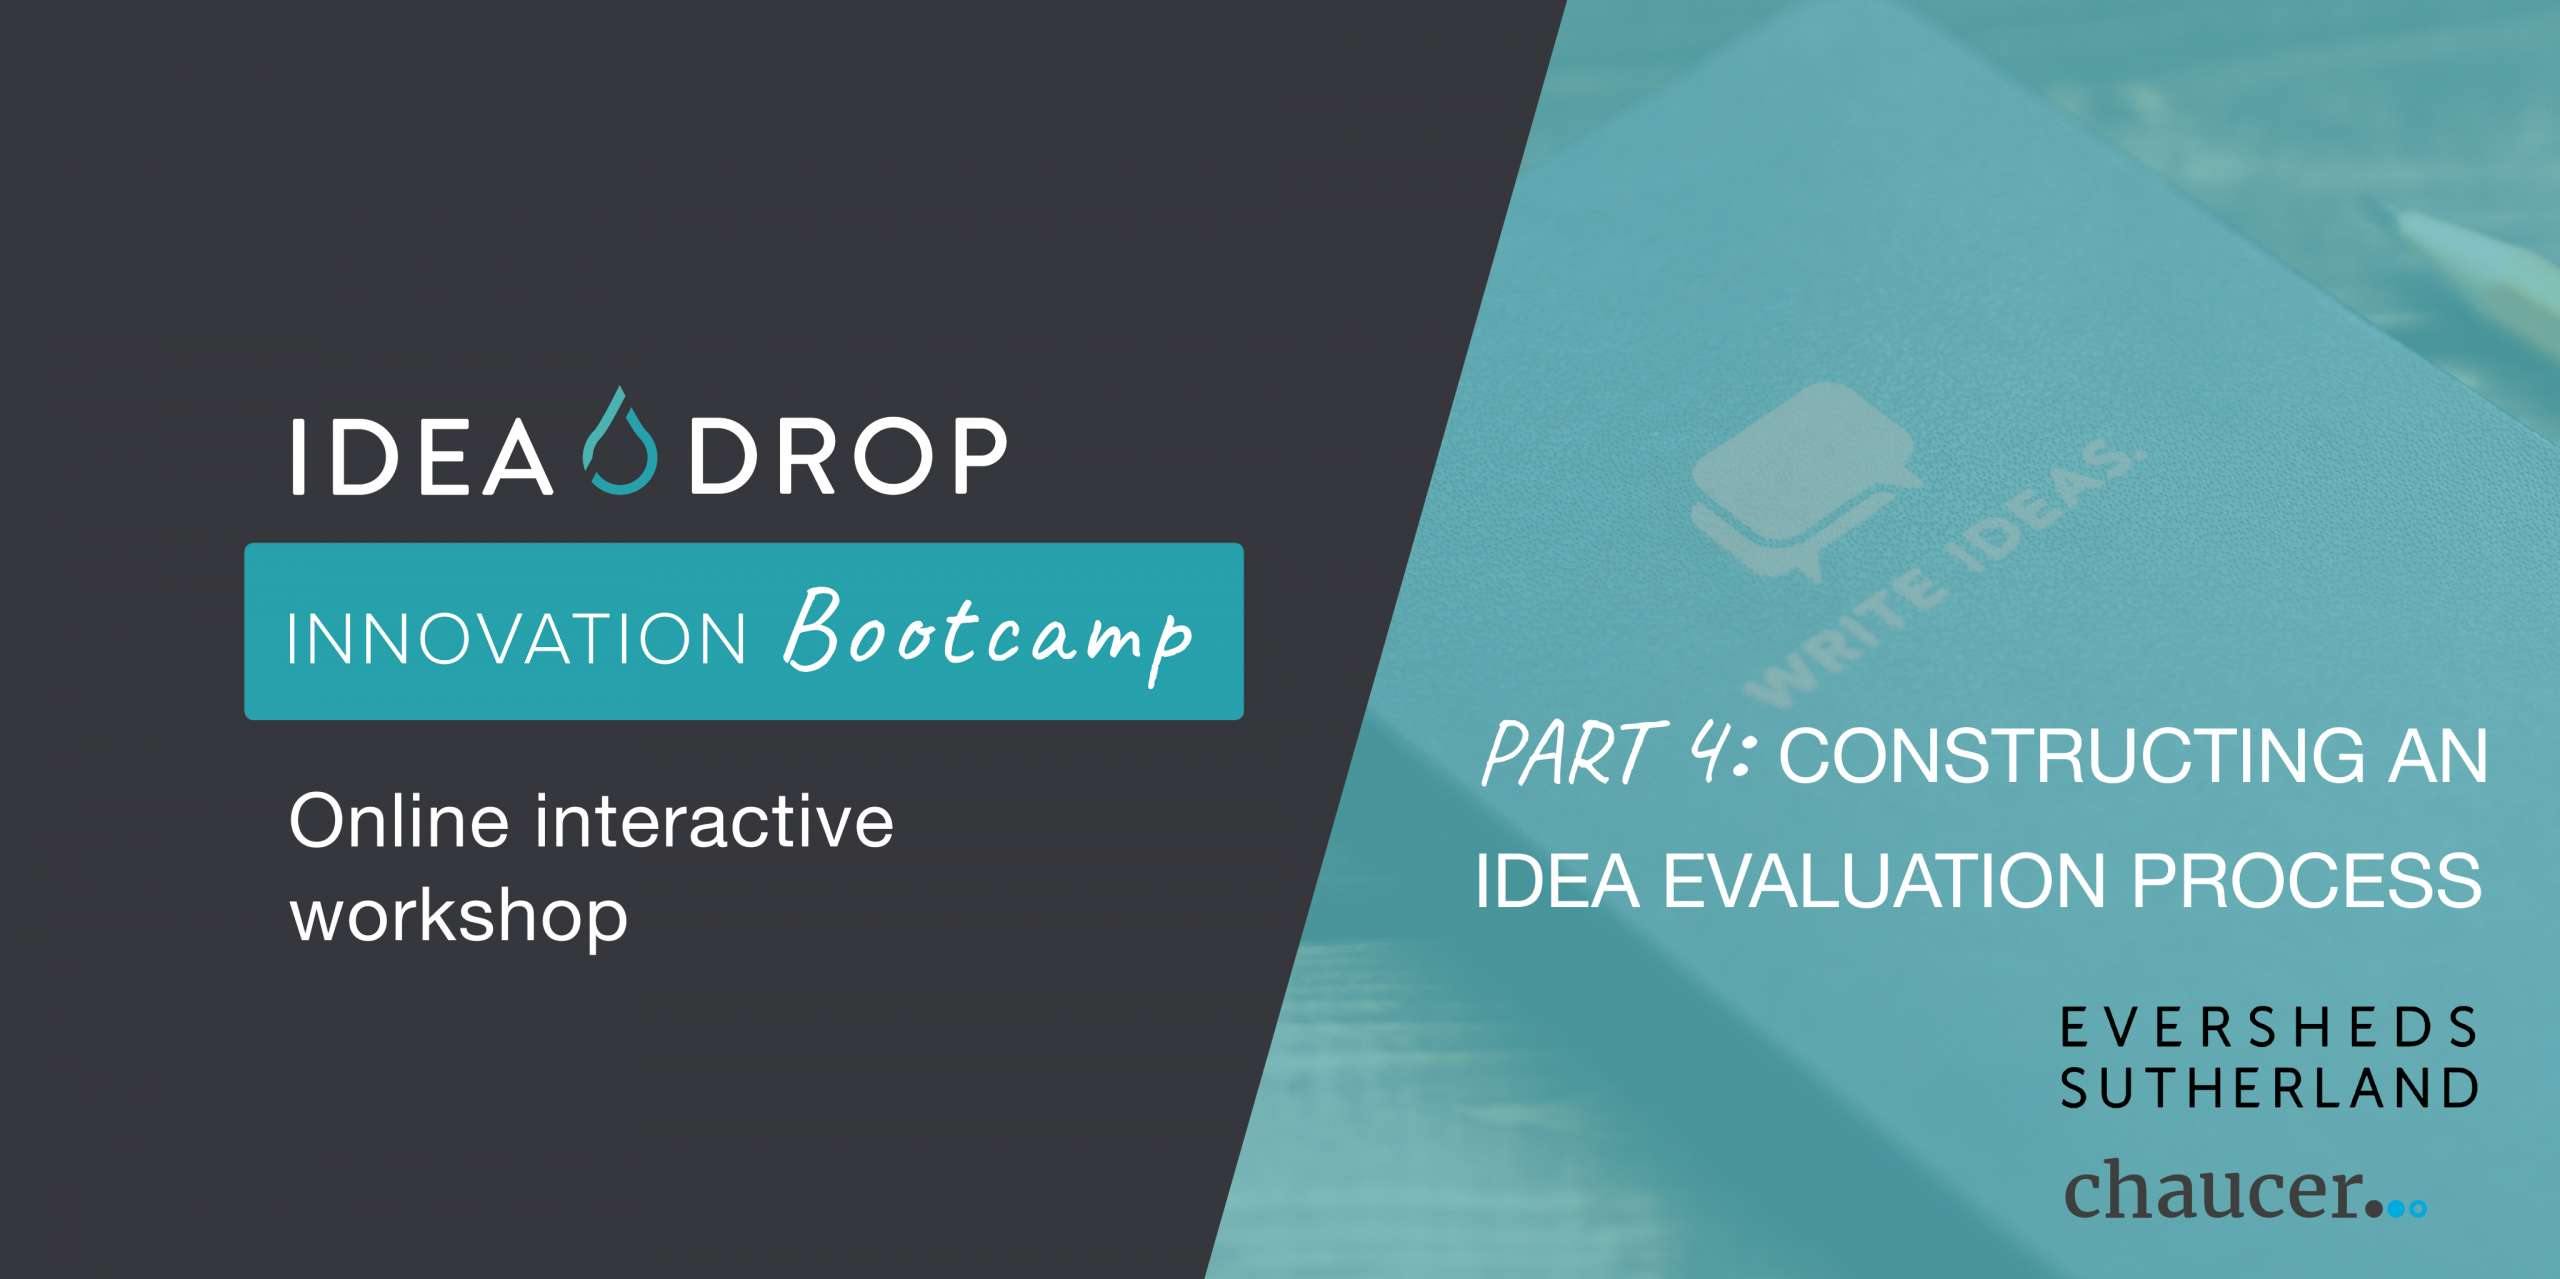 Innovation Bootcamp